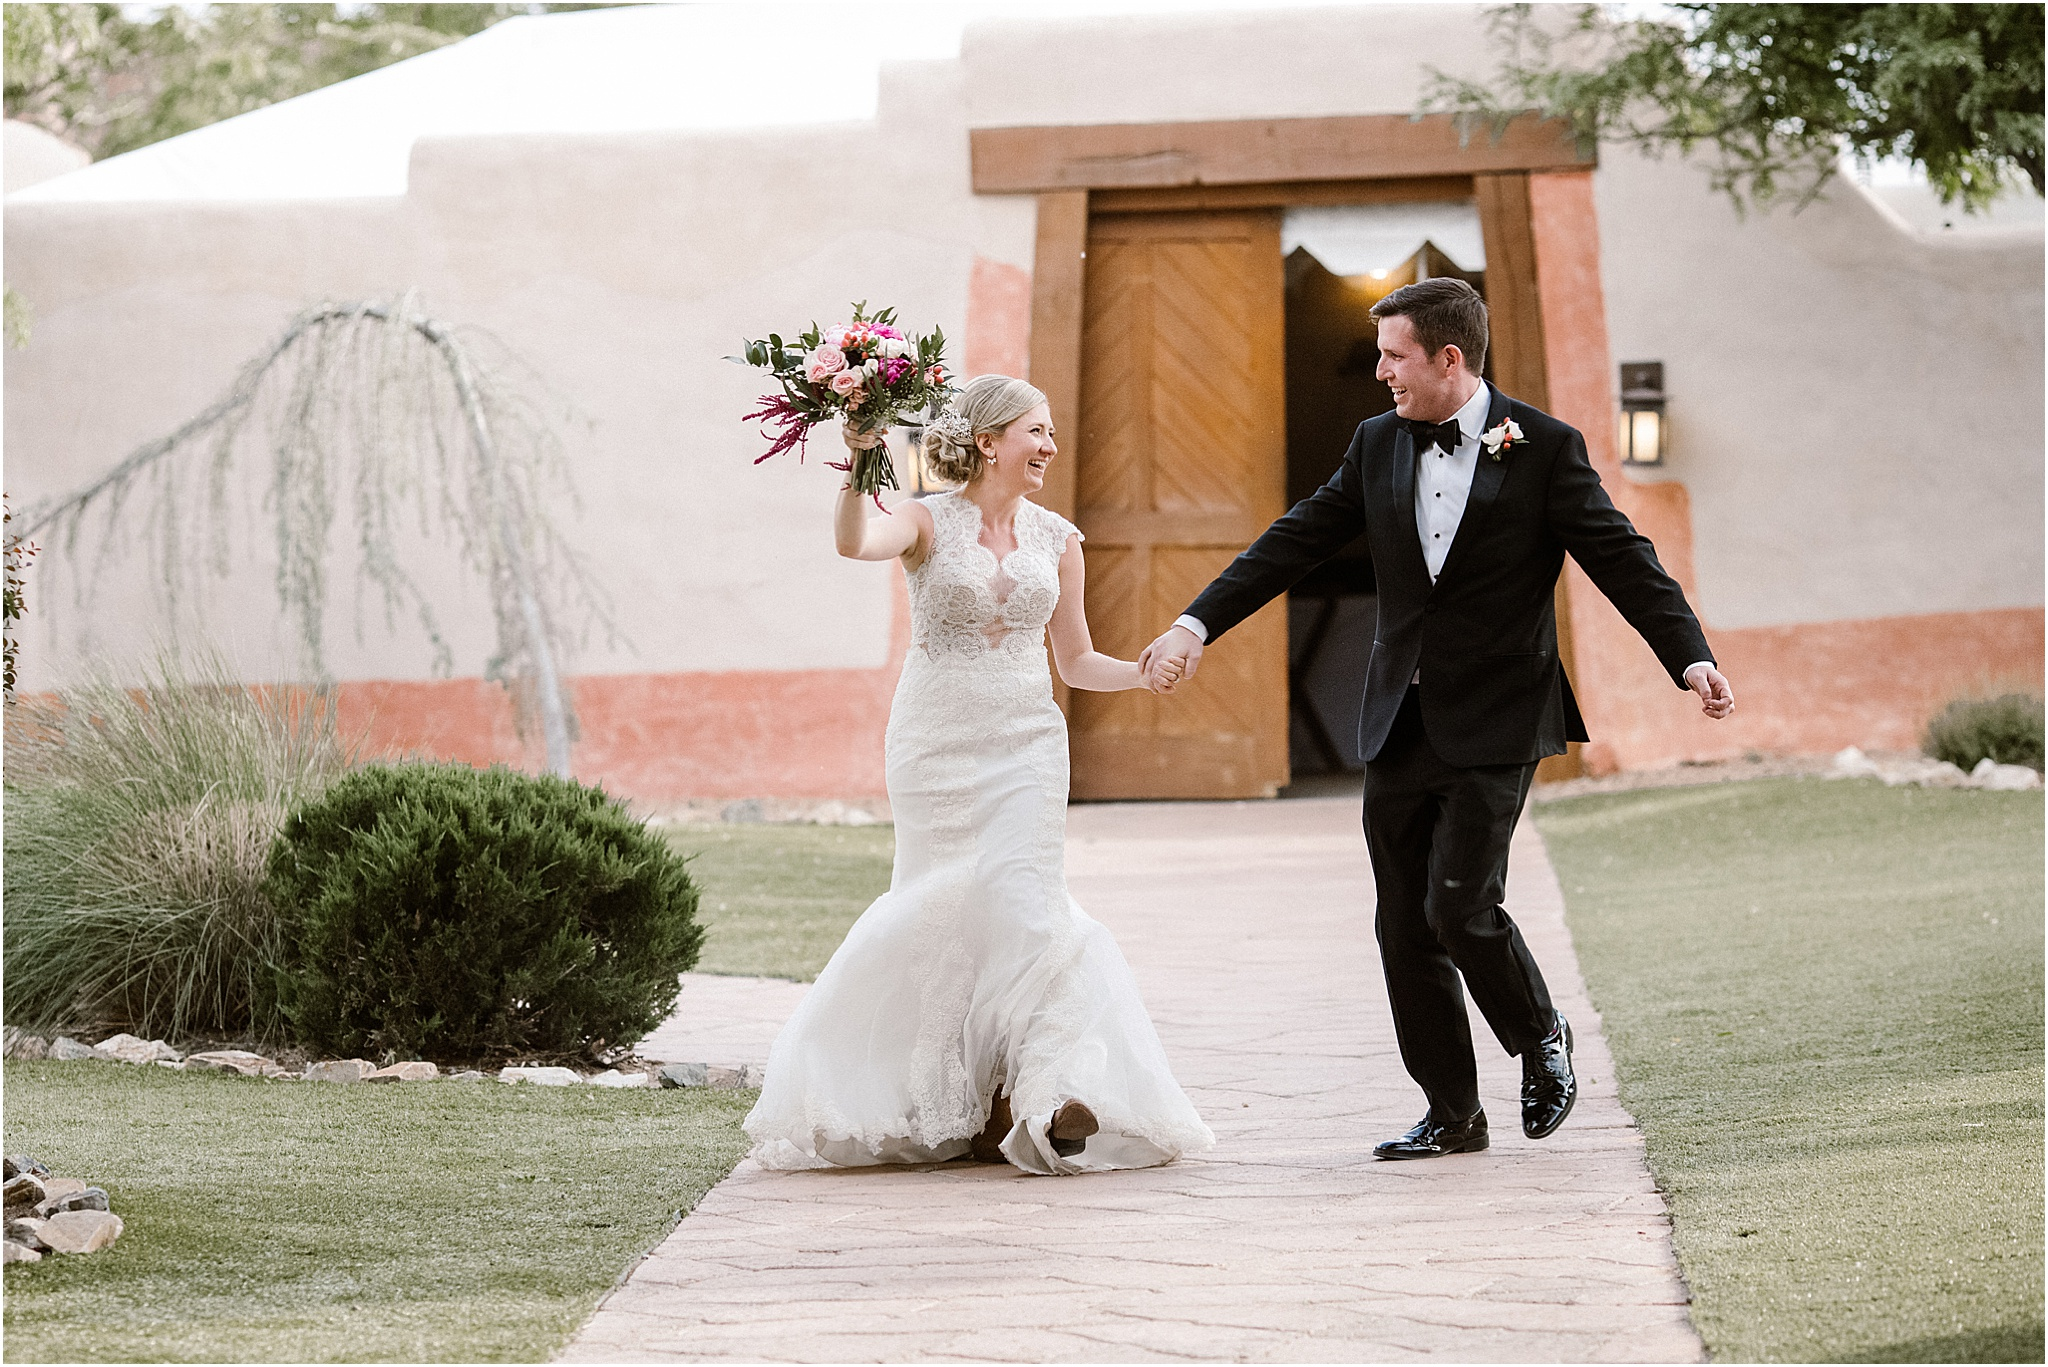 JENNA_JEROME_BLUE ROSE PHOTOGRAPHY_ABQ WEDDING_53